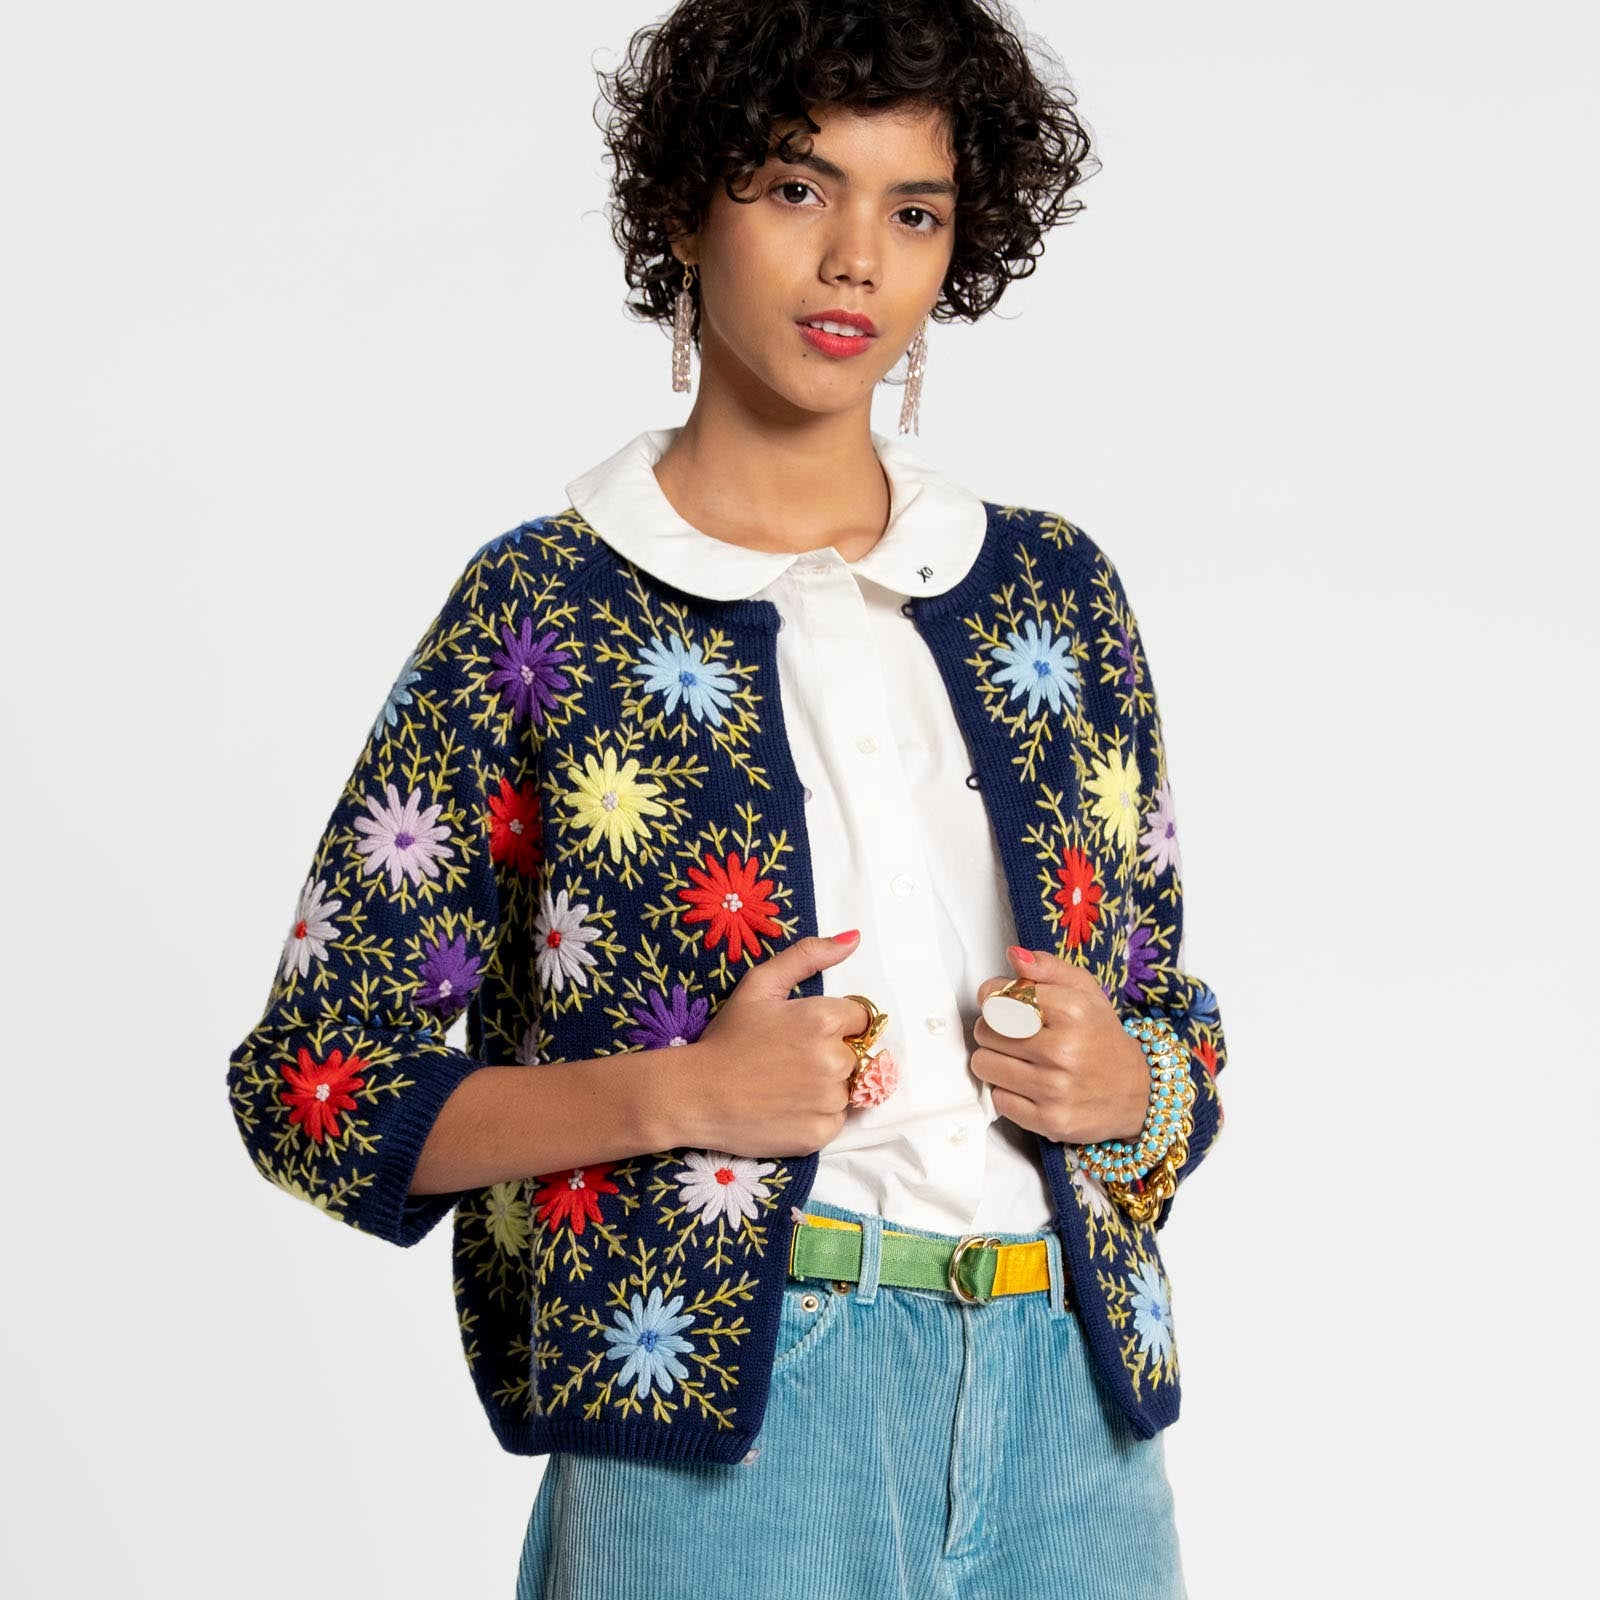 Flower Cardi Coat Navy - Frances Valentine